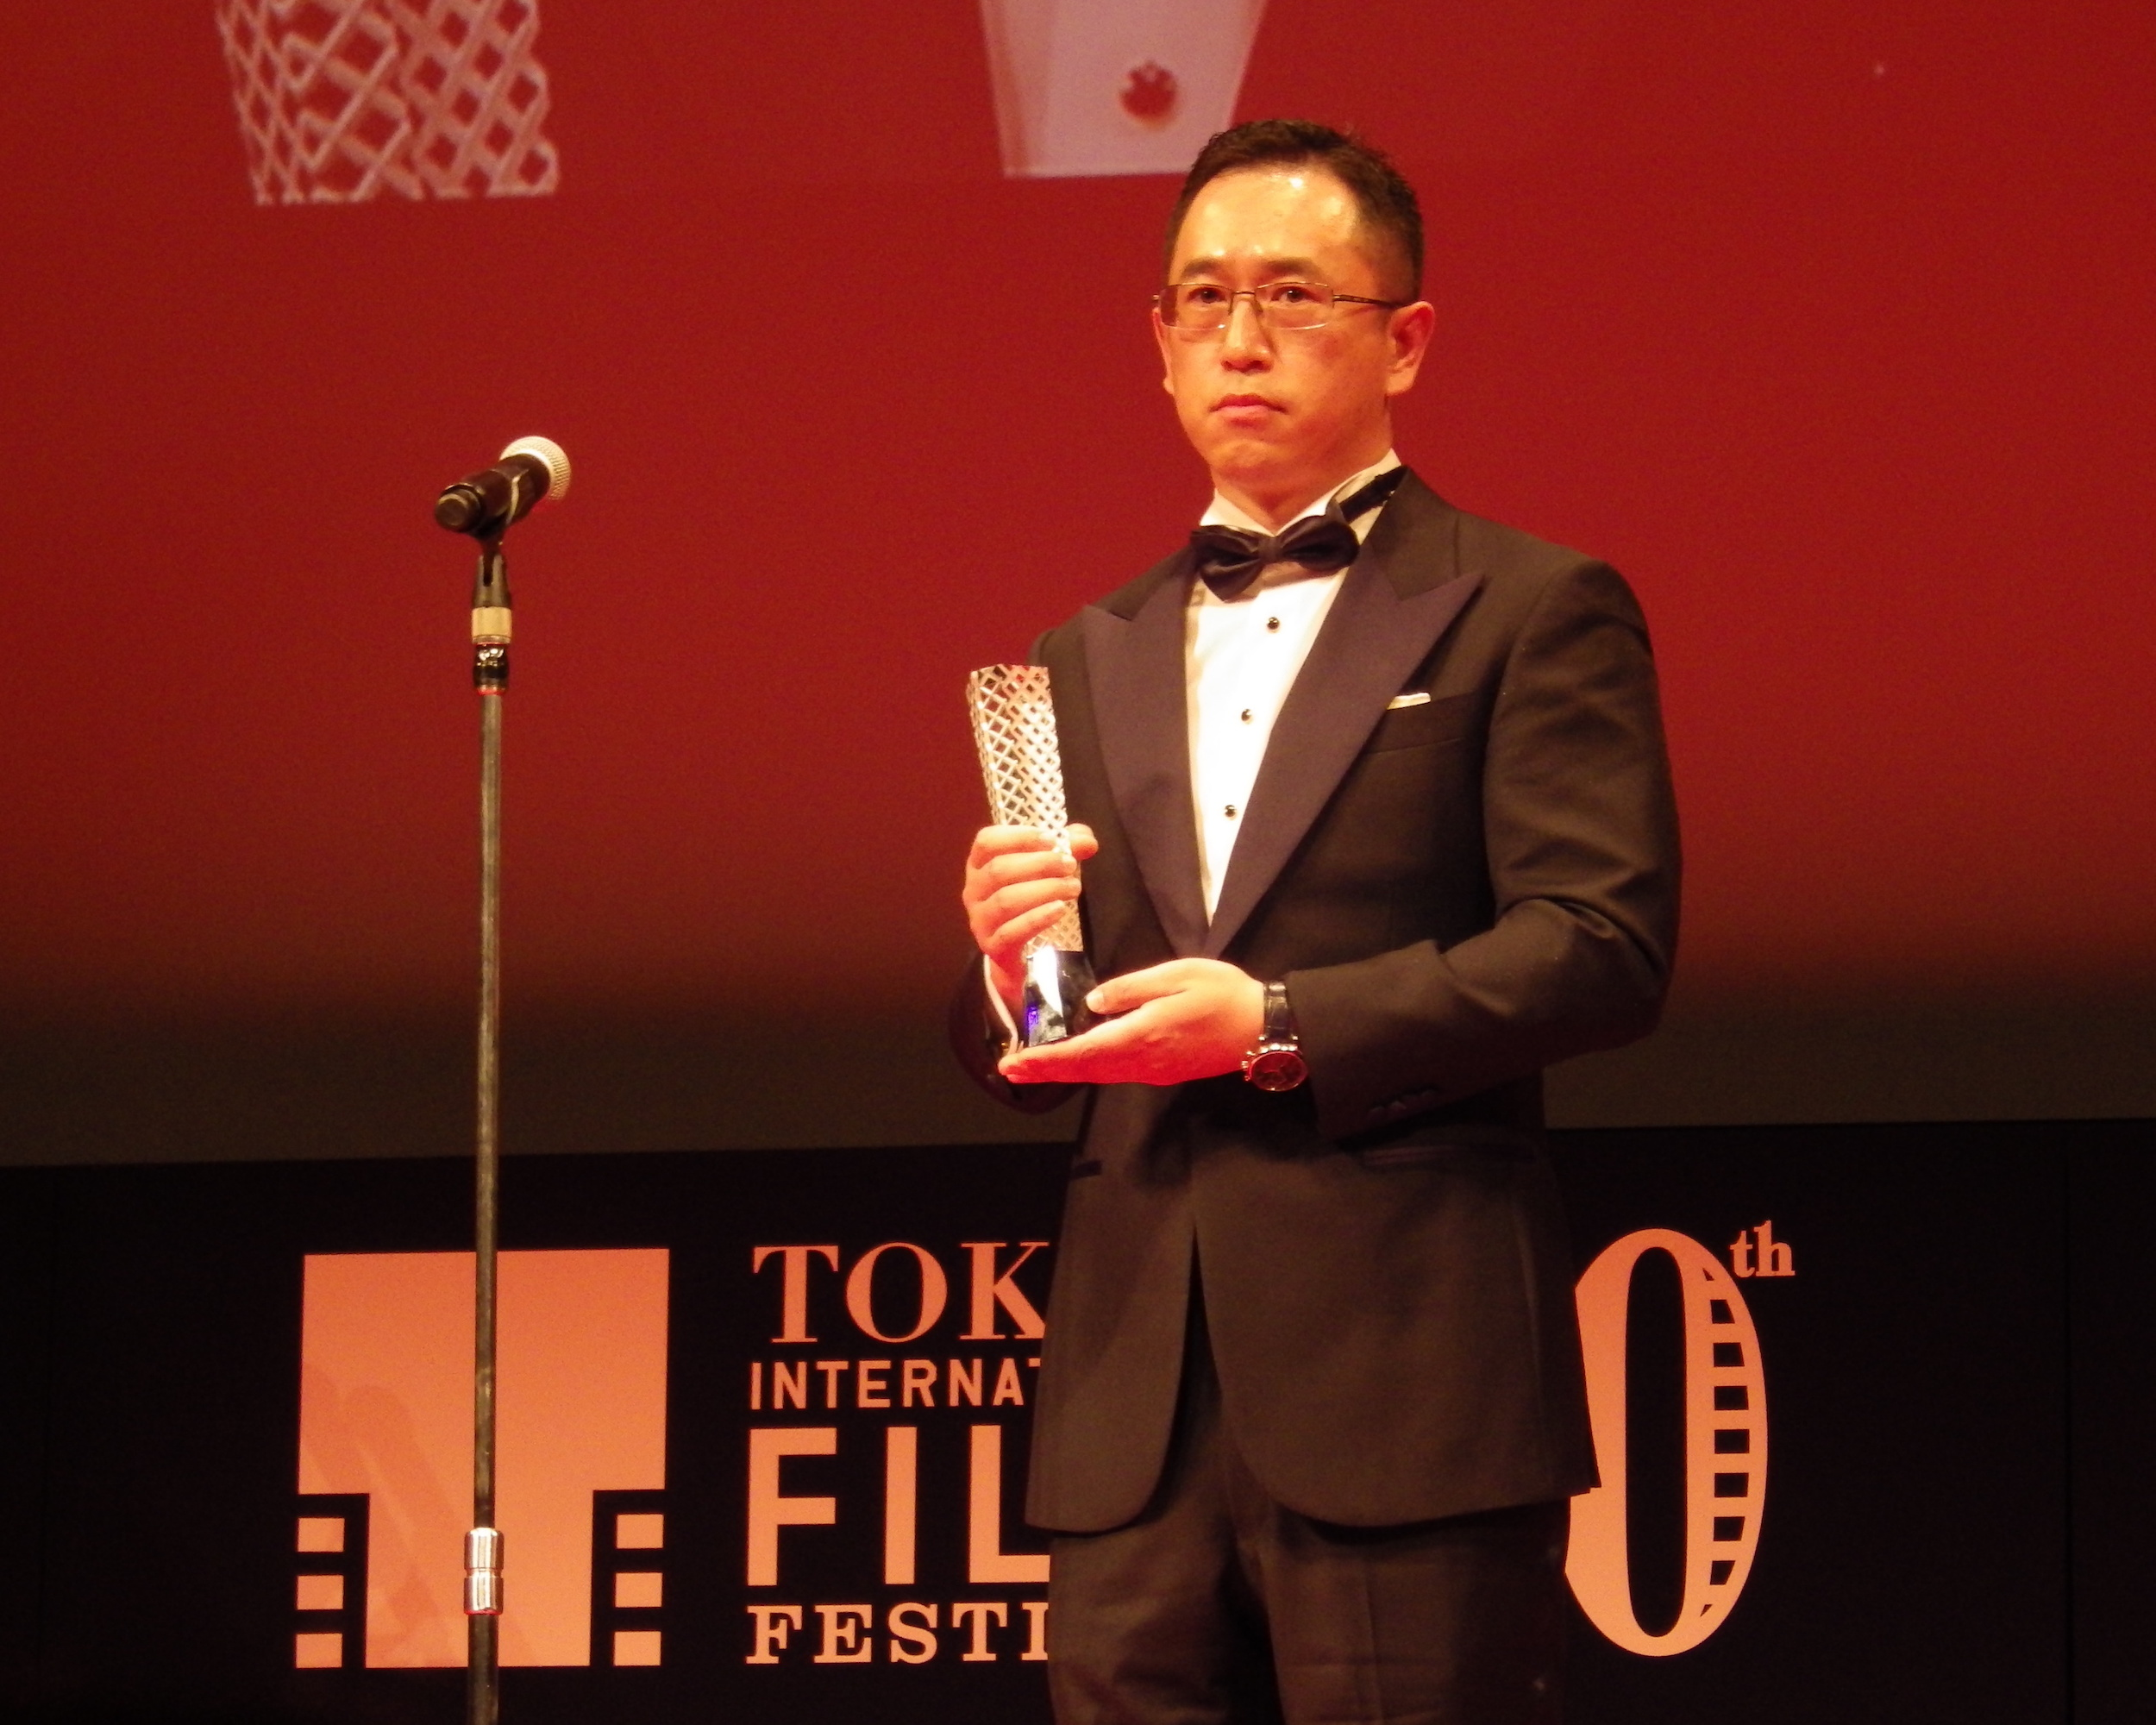 Dong Yue accepting the award for Best Artistic Contribution at the closing ceremony for the 30th Tokyo International Film Festival.